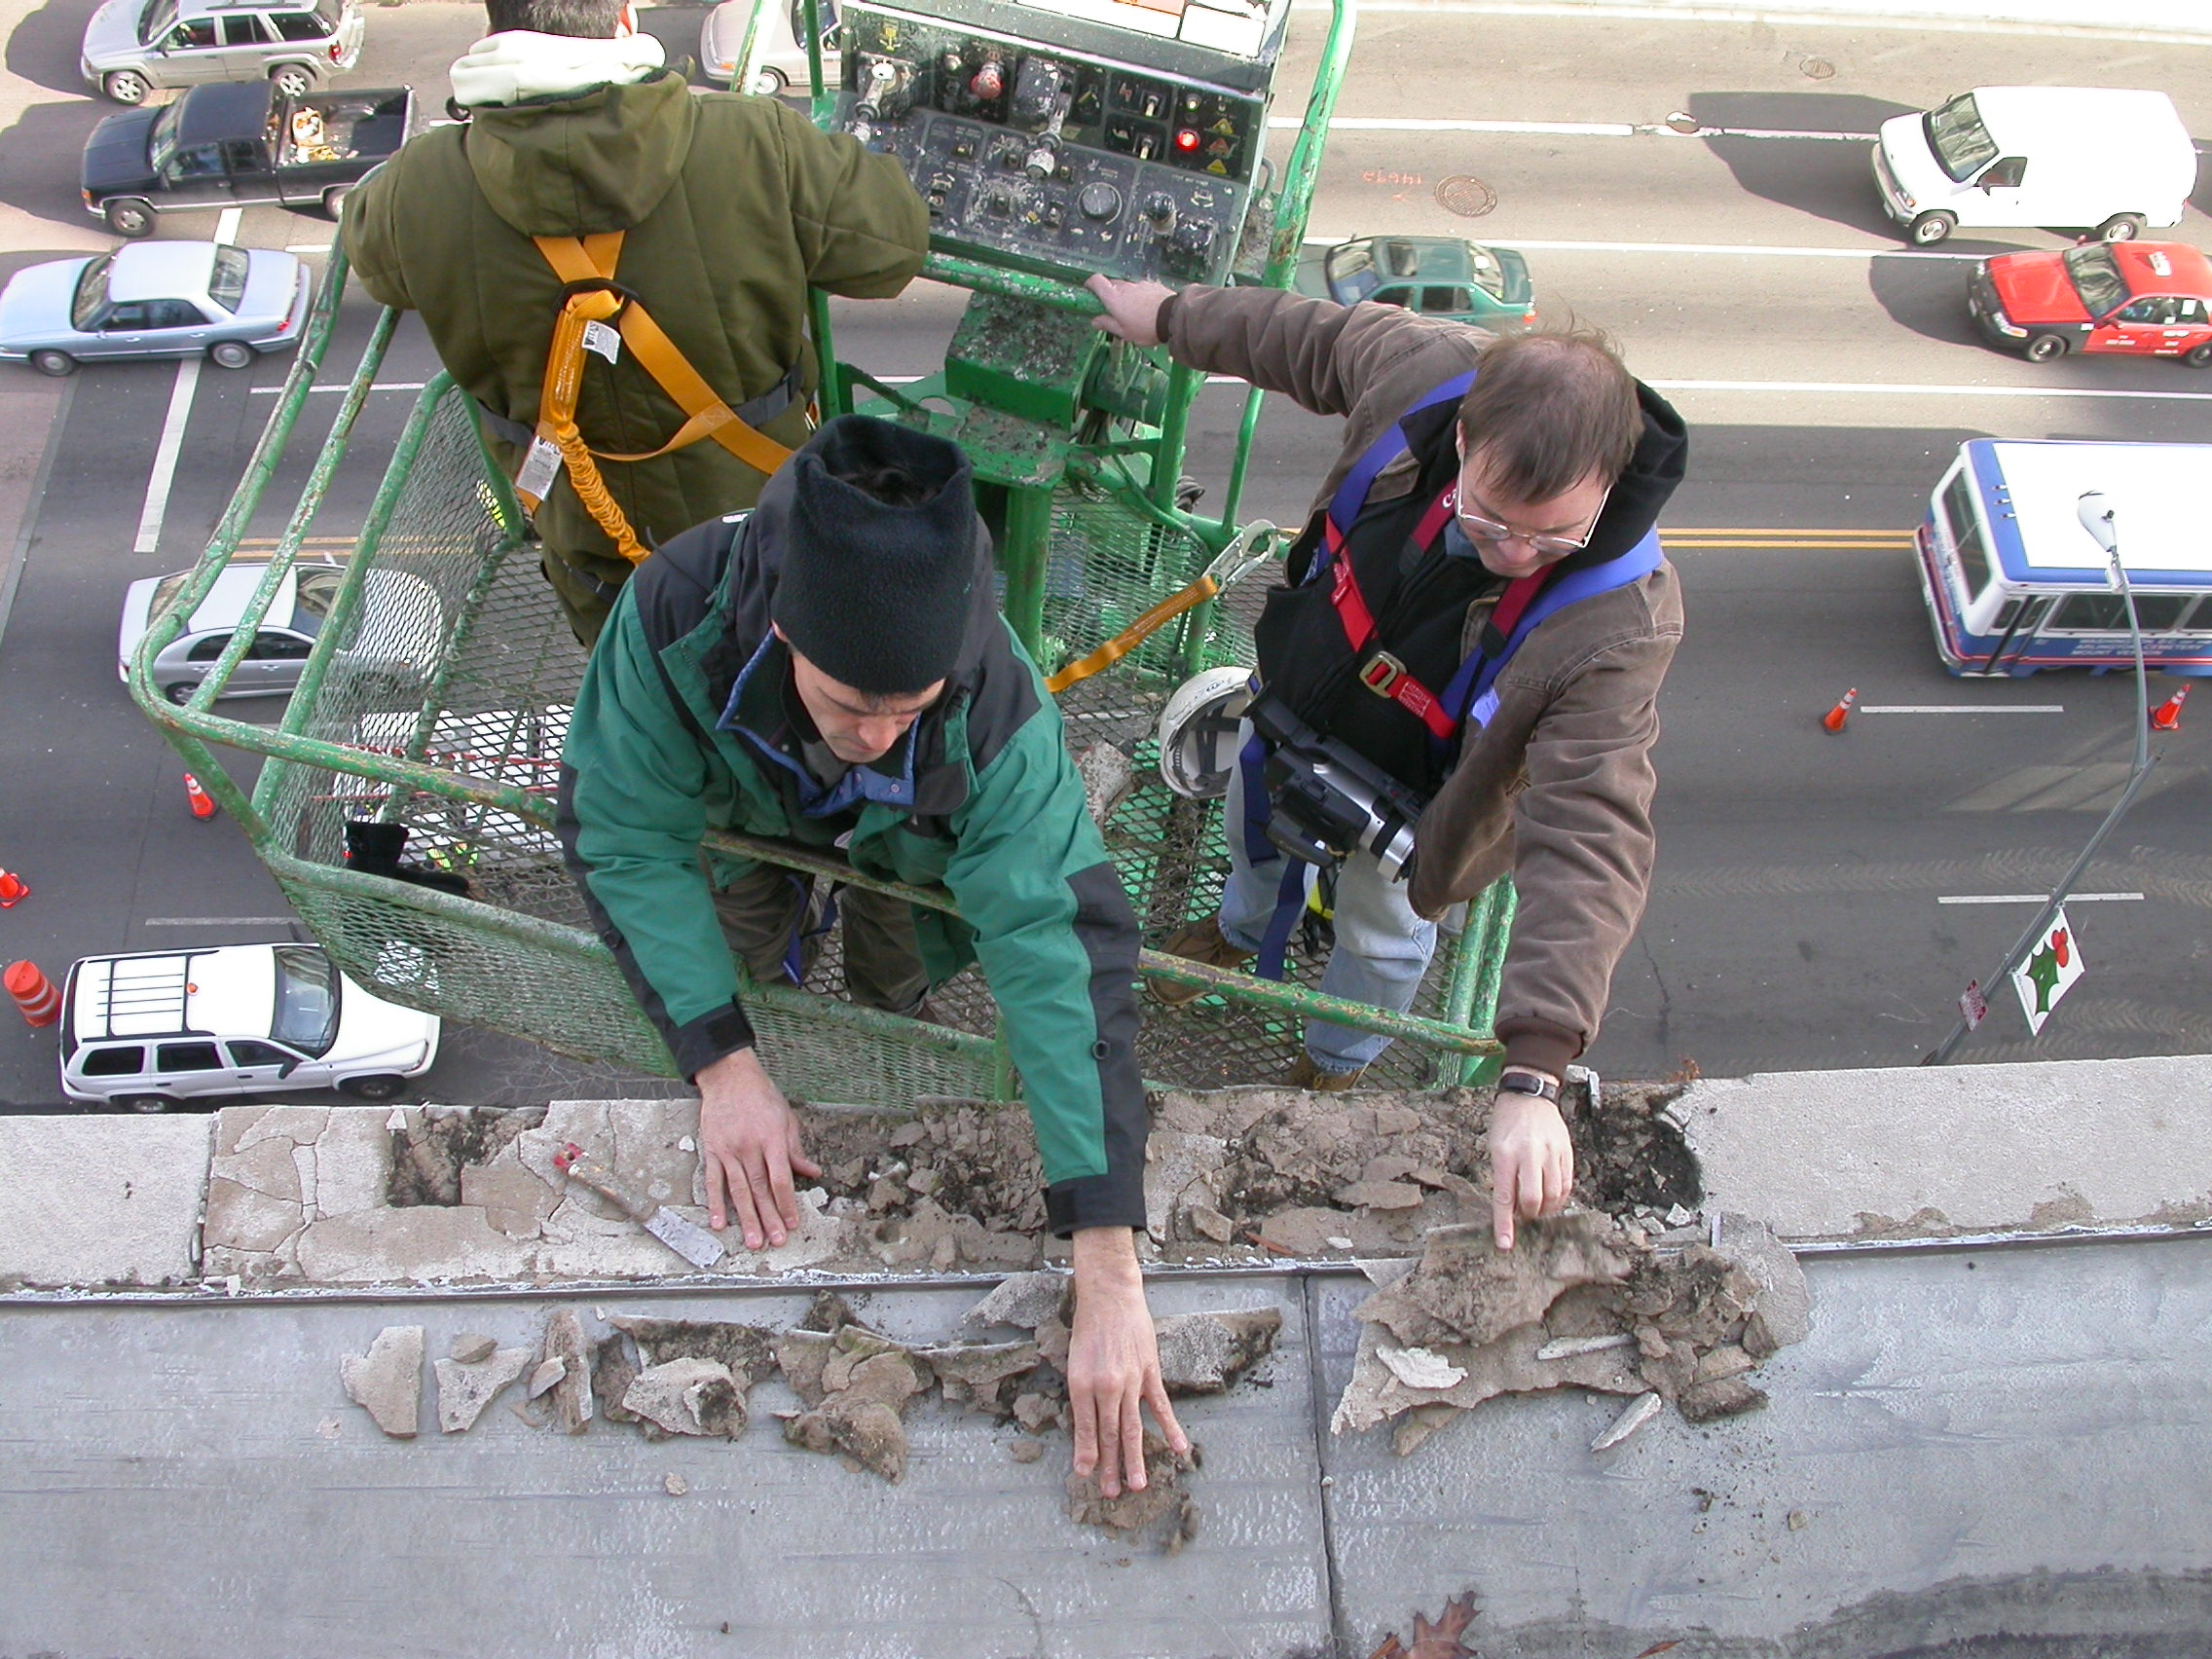 Engineer David Wallace and John Greenwalt Lee in 120-foot lift at the Department of Commerce analyzing the causes and developing a solution to failed gutter detailing in 2003.